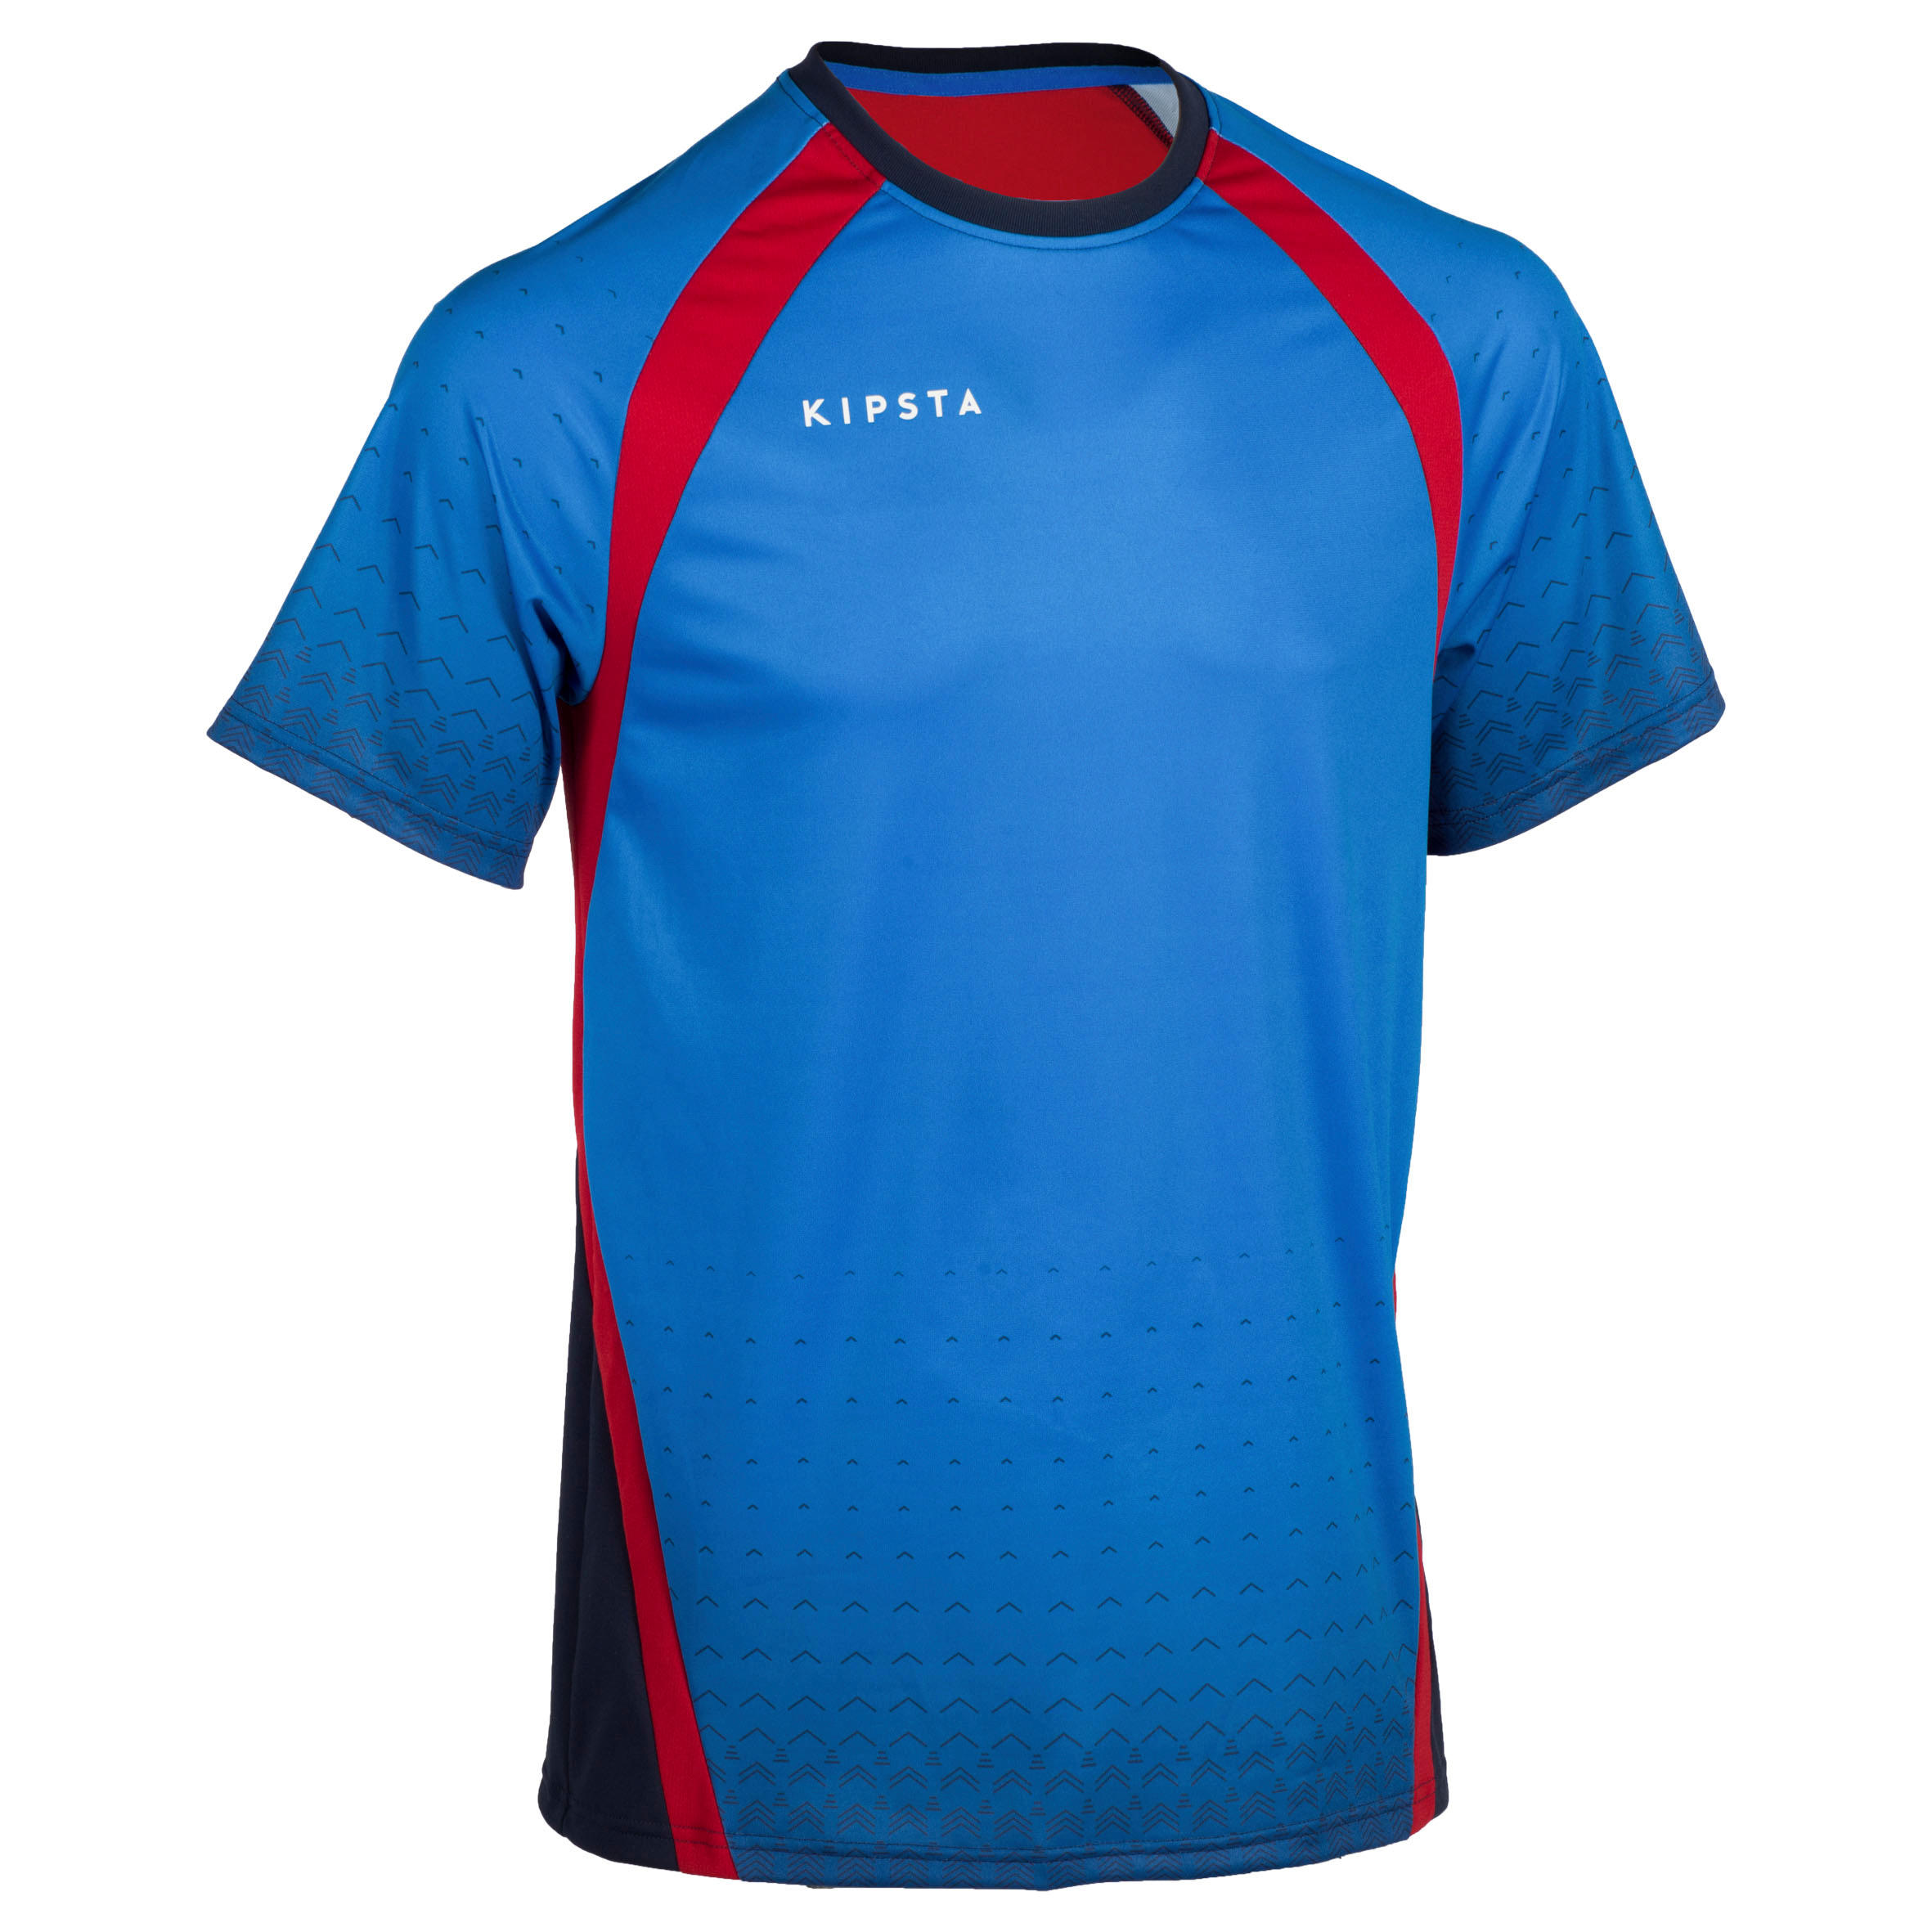 V500 Volleyball Jersey - Blue/Red